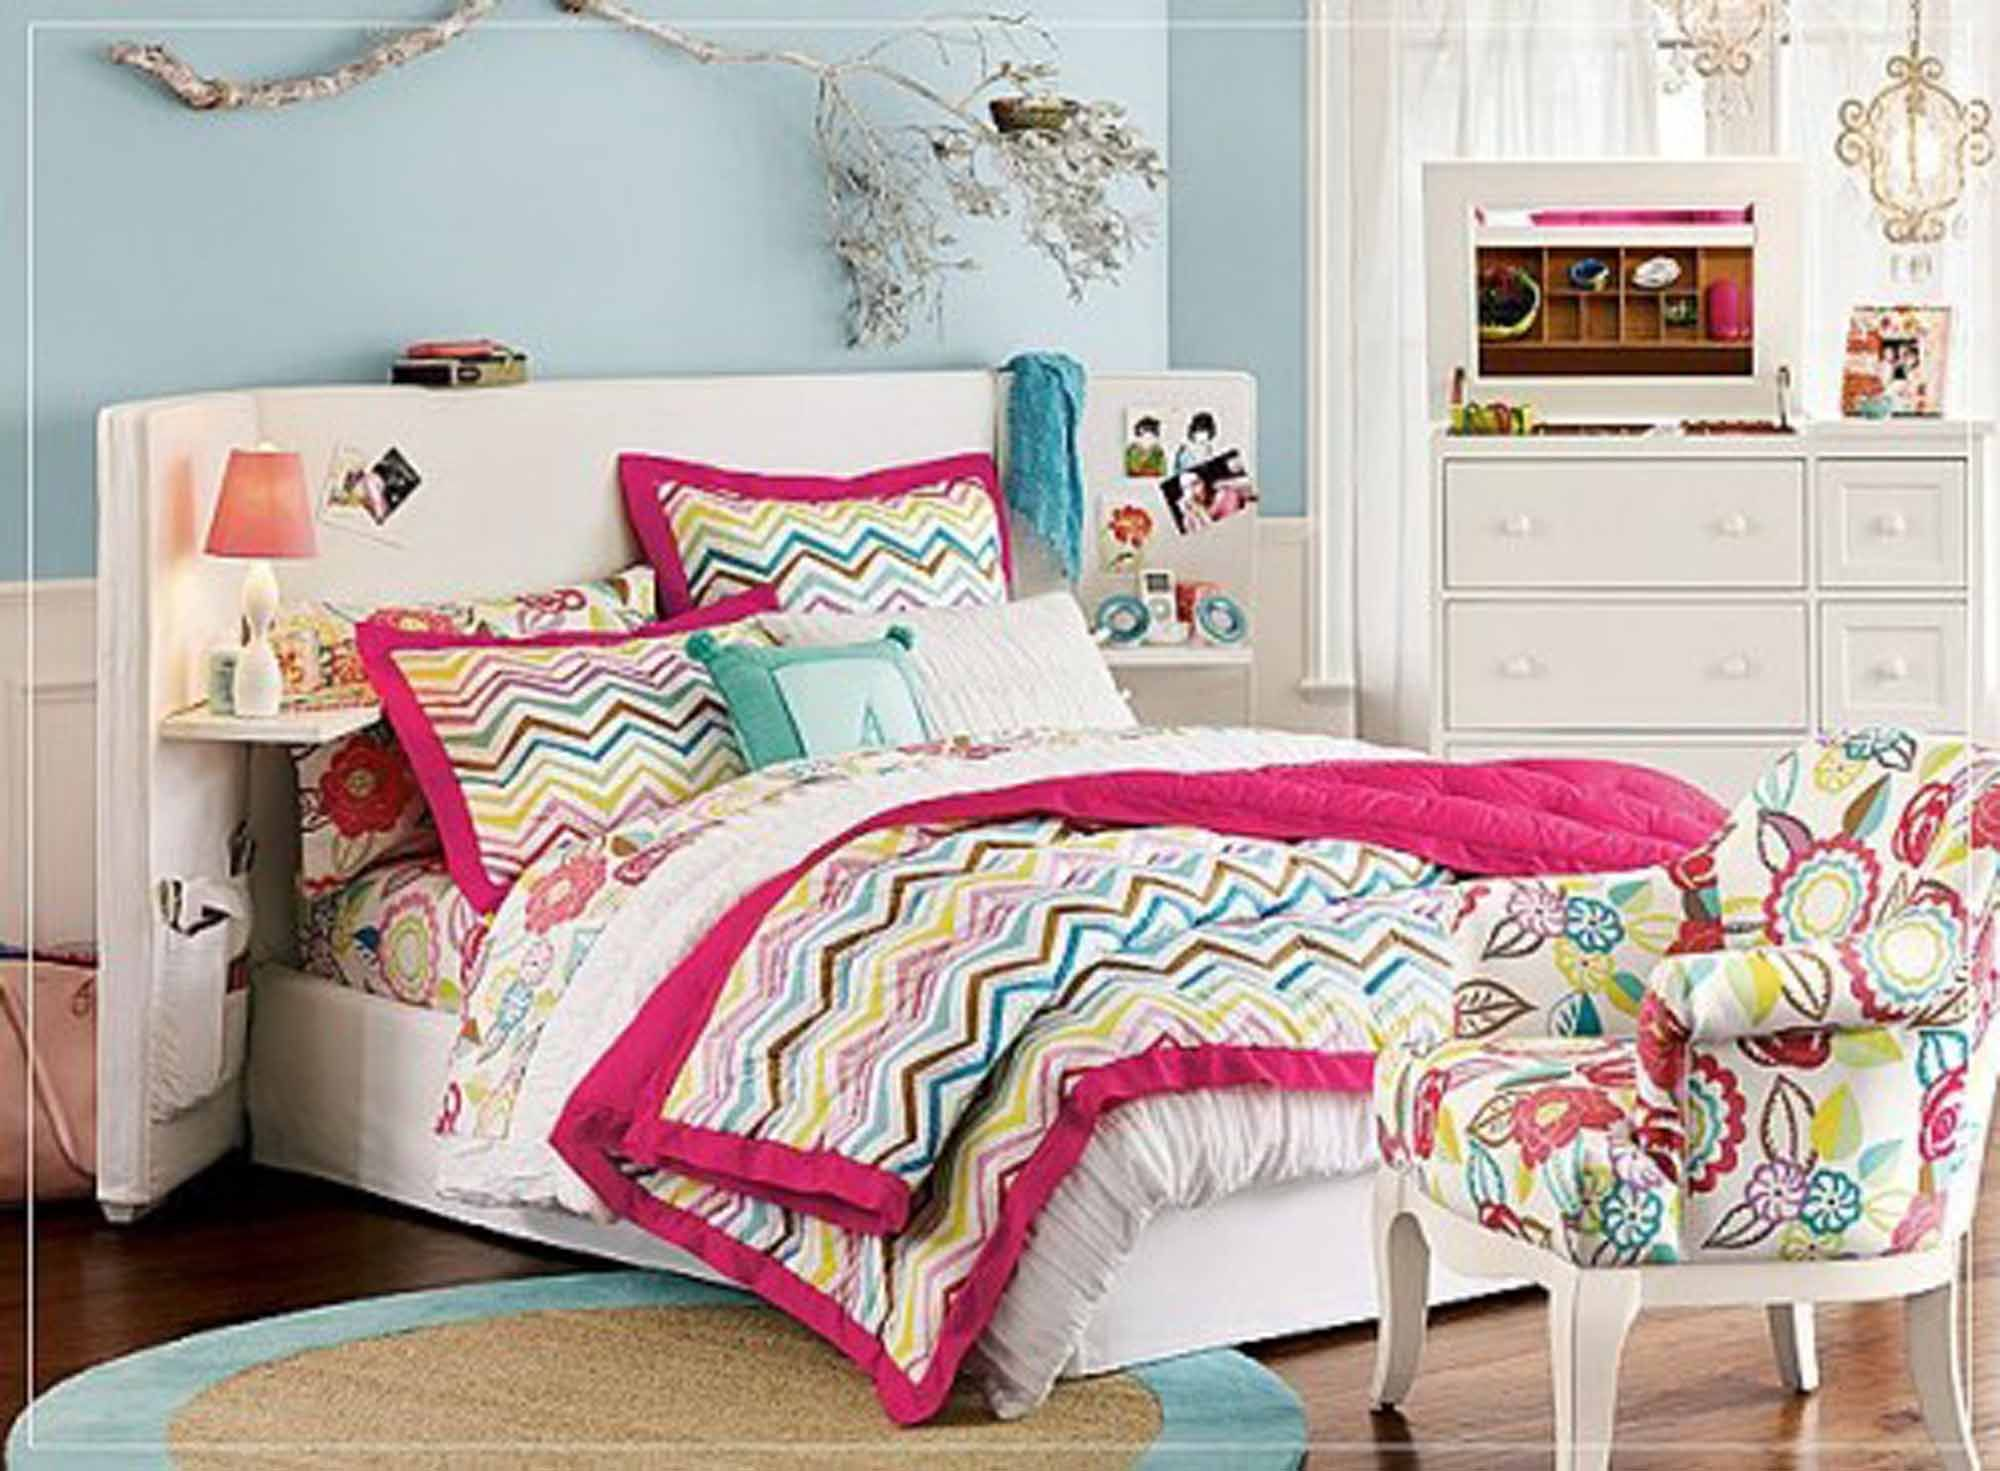 teens bedroom remarkable teenage girl bedroom ideas with girls bedroom and lovely headboard design also colourful bed with colourful arm chair and full - Teenage Girl Room Designs Ideas